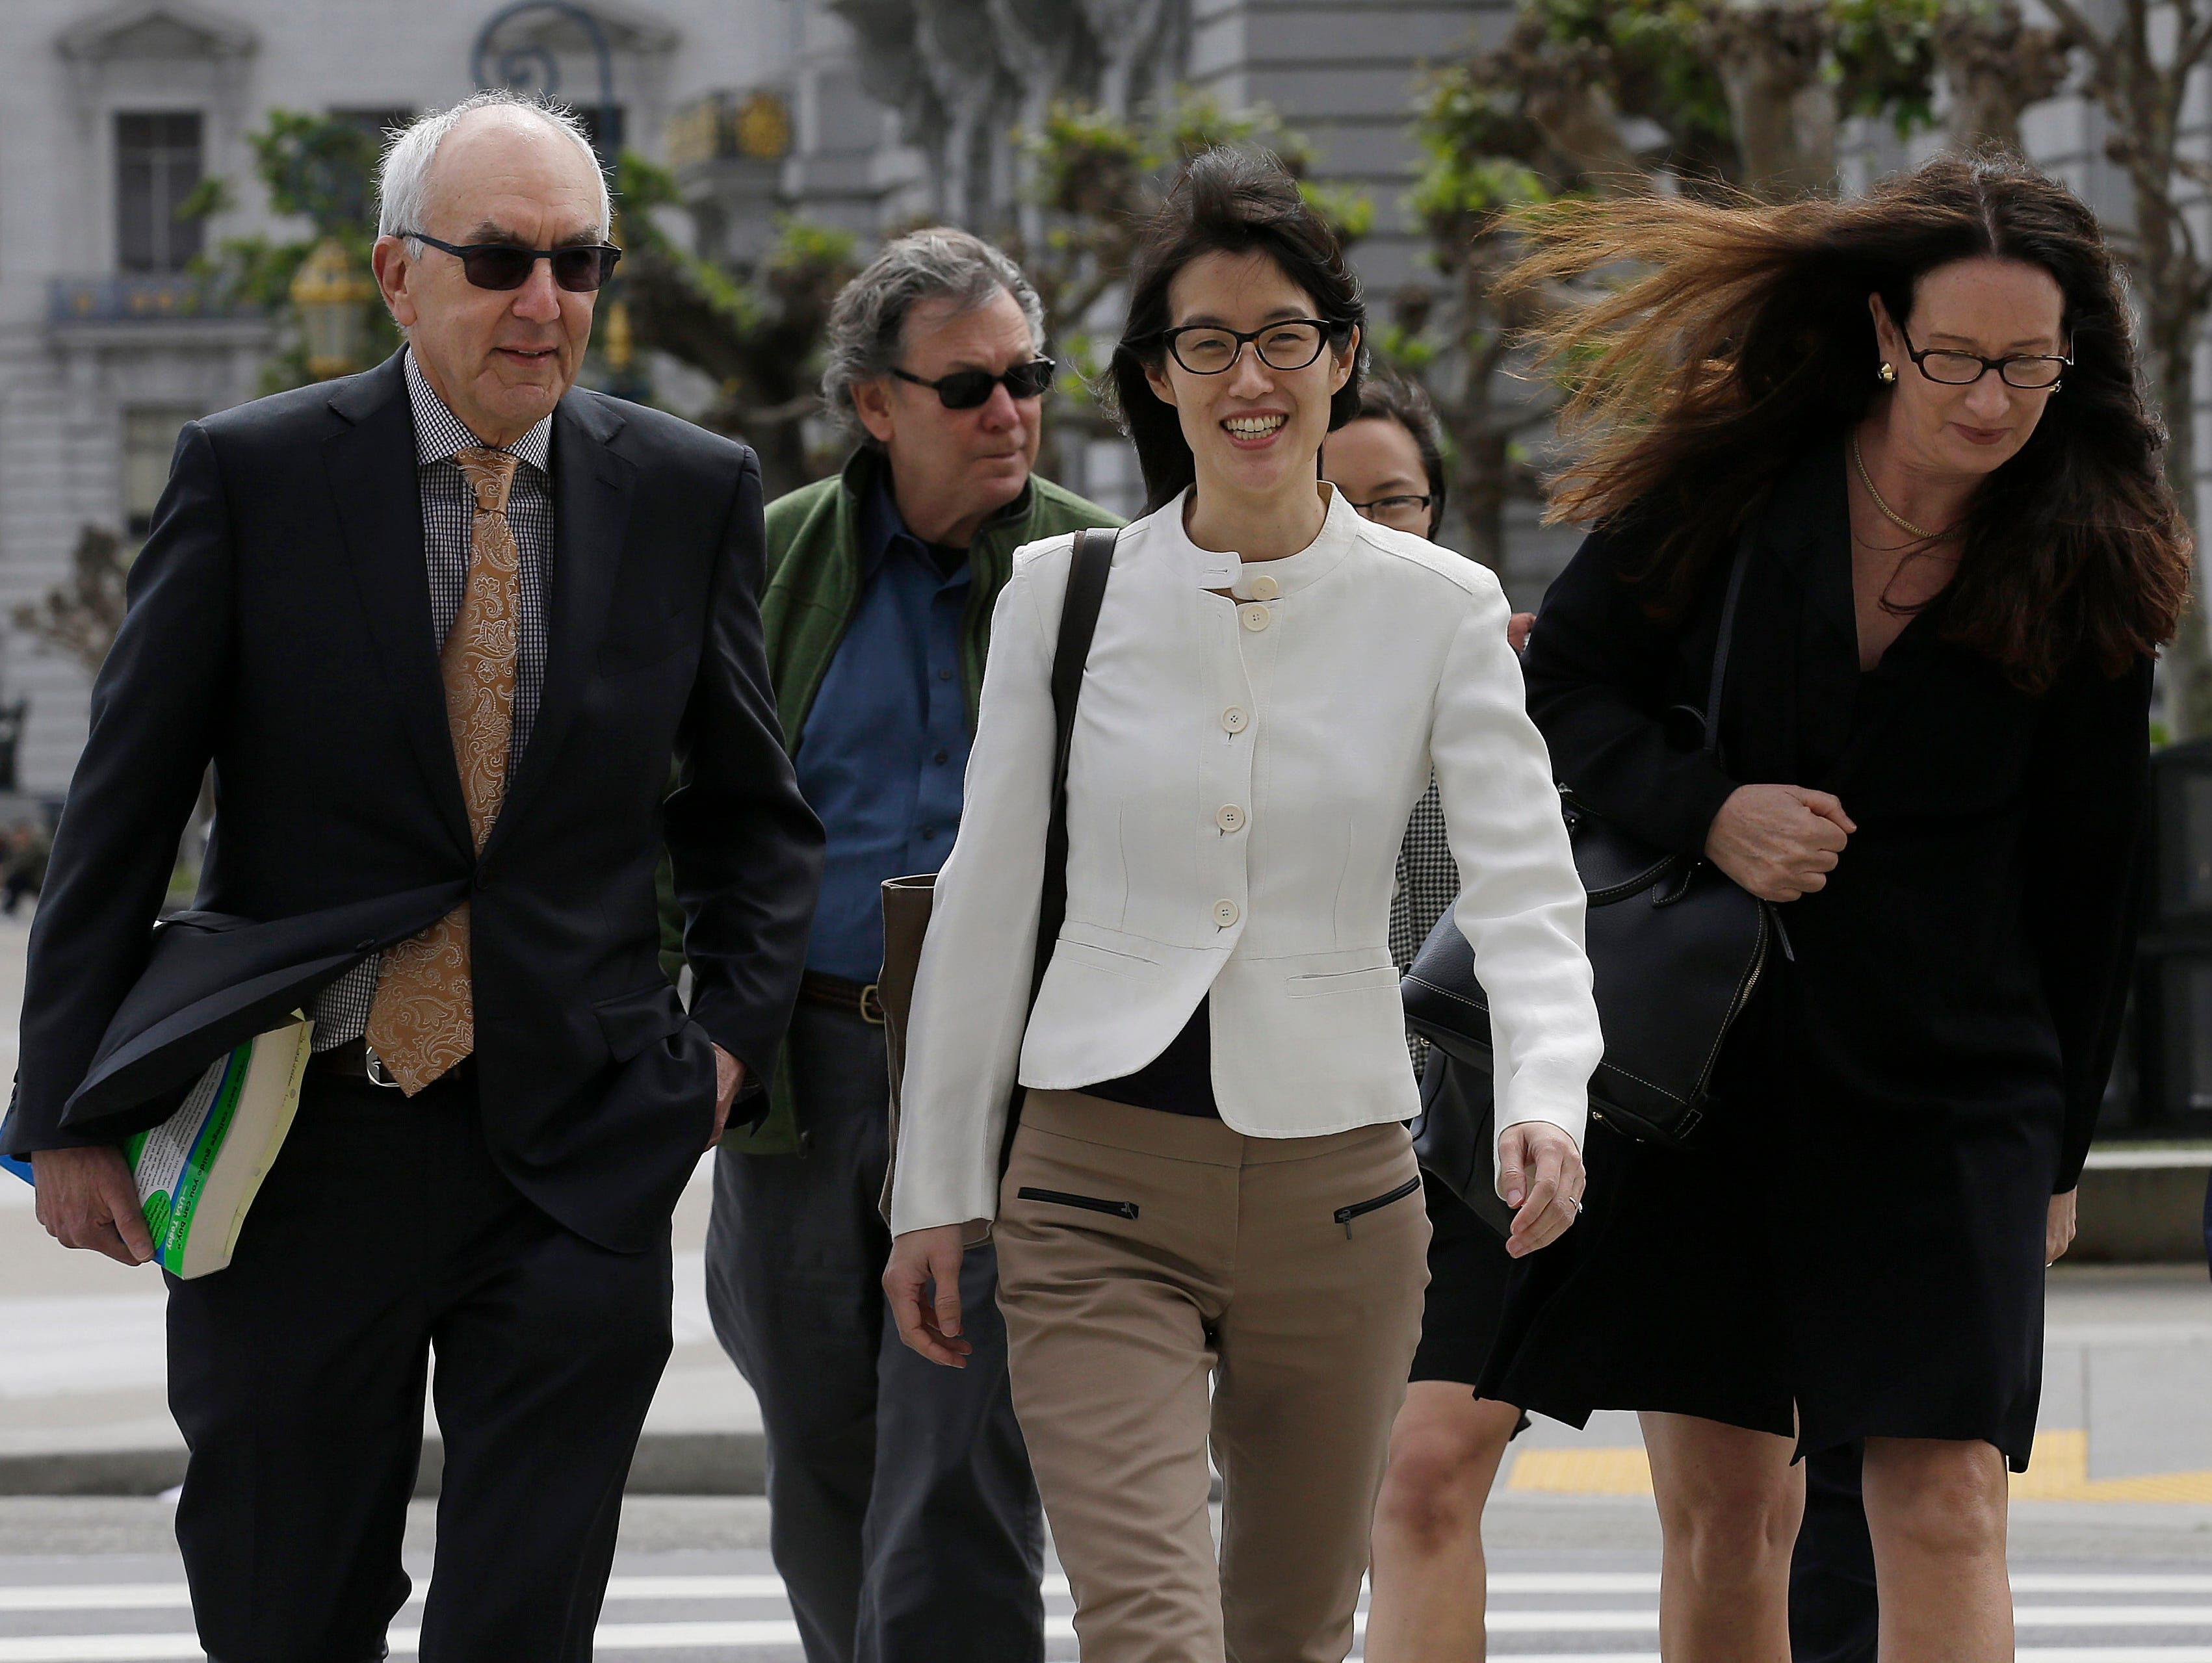 Ellen Pao, center, walks to Civic Center Courthouse in San Francisco March 27. A jury ruled against Ellen Pao in her sex discrimination case against venture capital firm Kleiner Perkins Caufield & Byers.